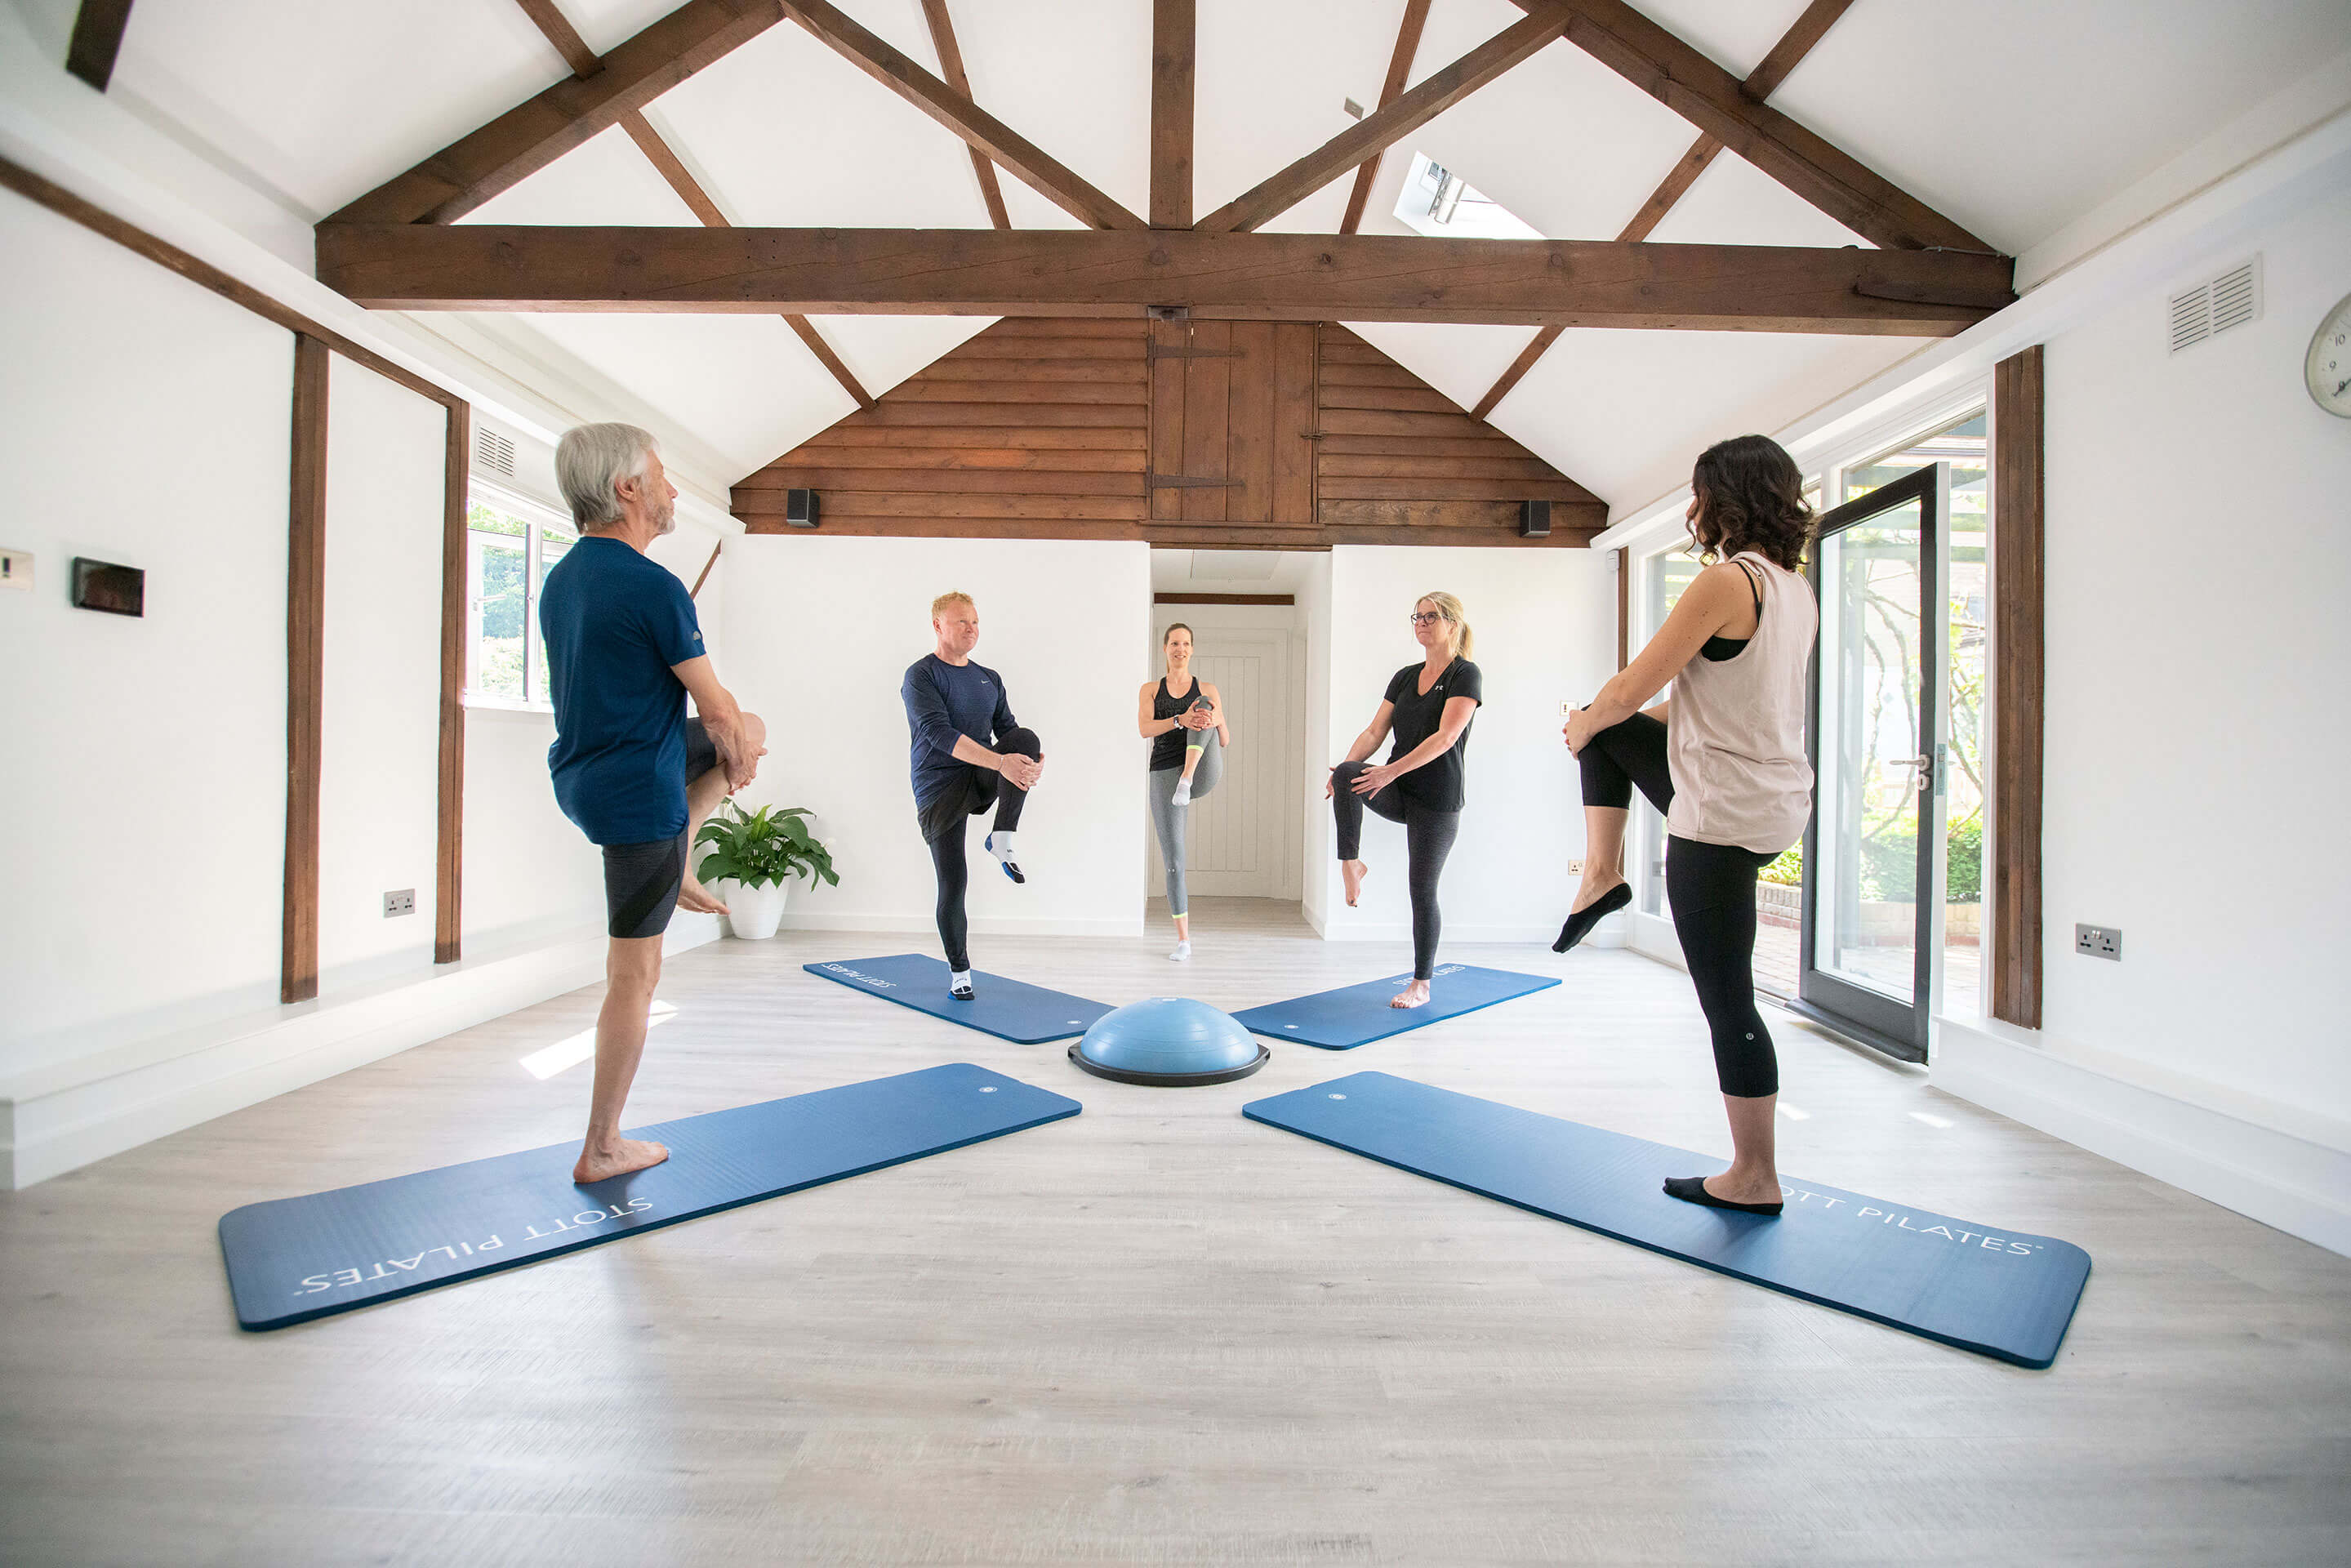 The Form Practice is located in a beautifully renovated barn and offers Pilates on mats as well as a kitted out studio